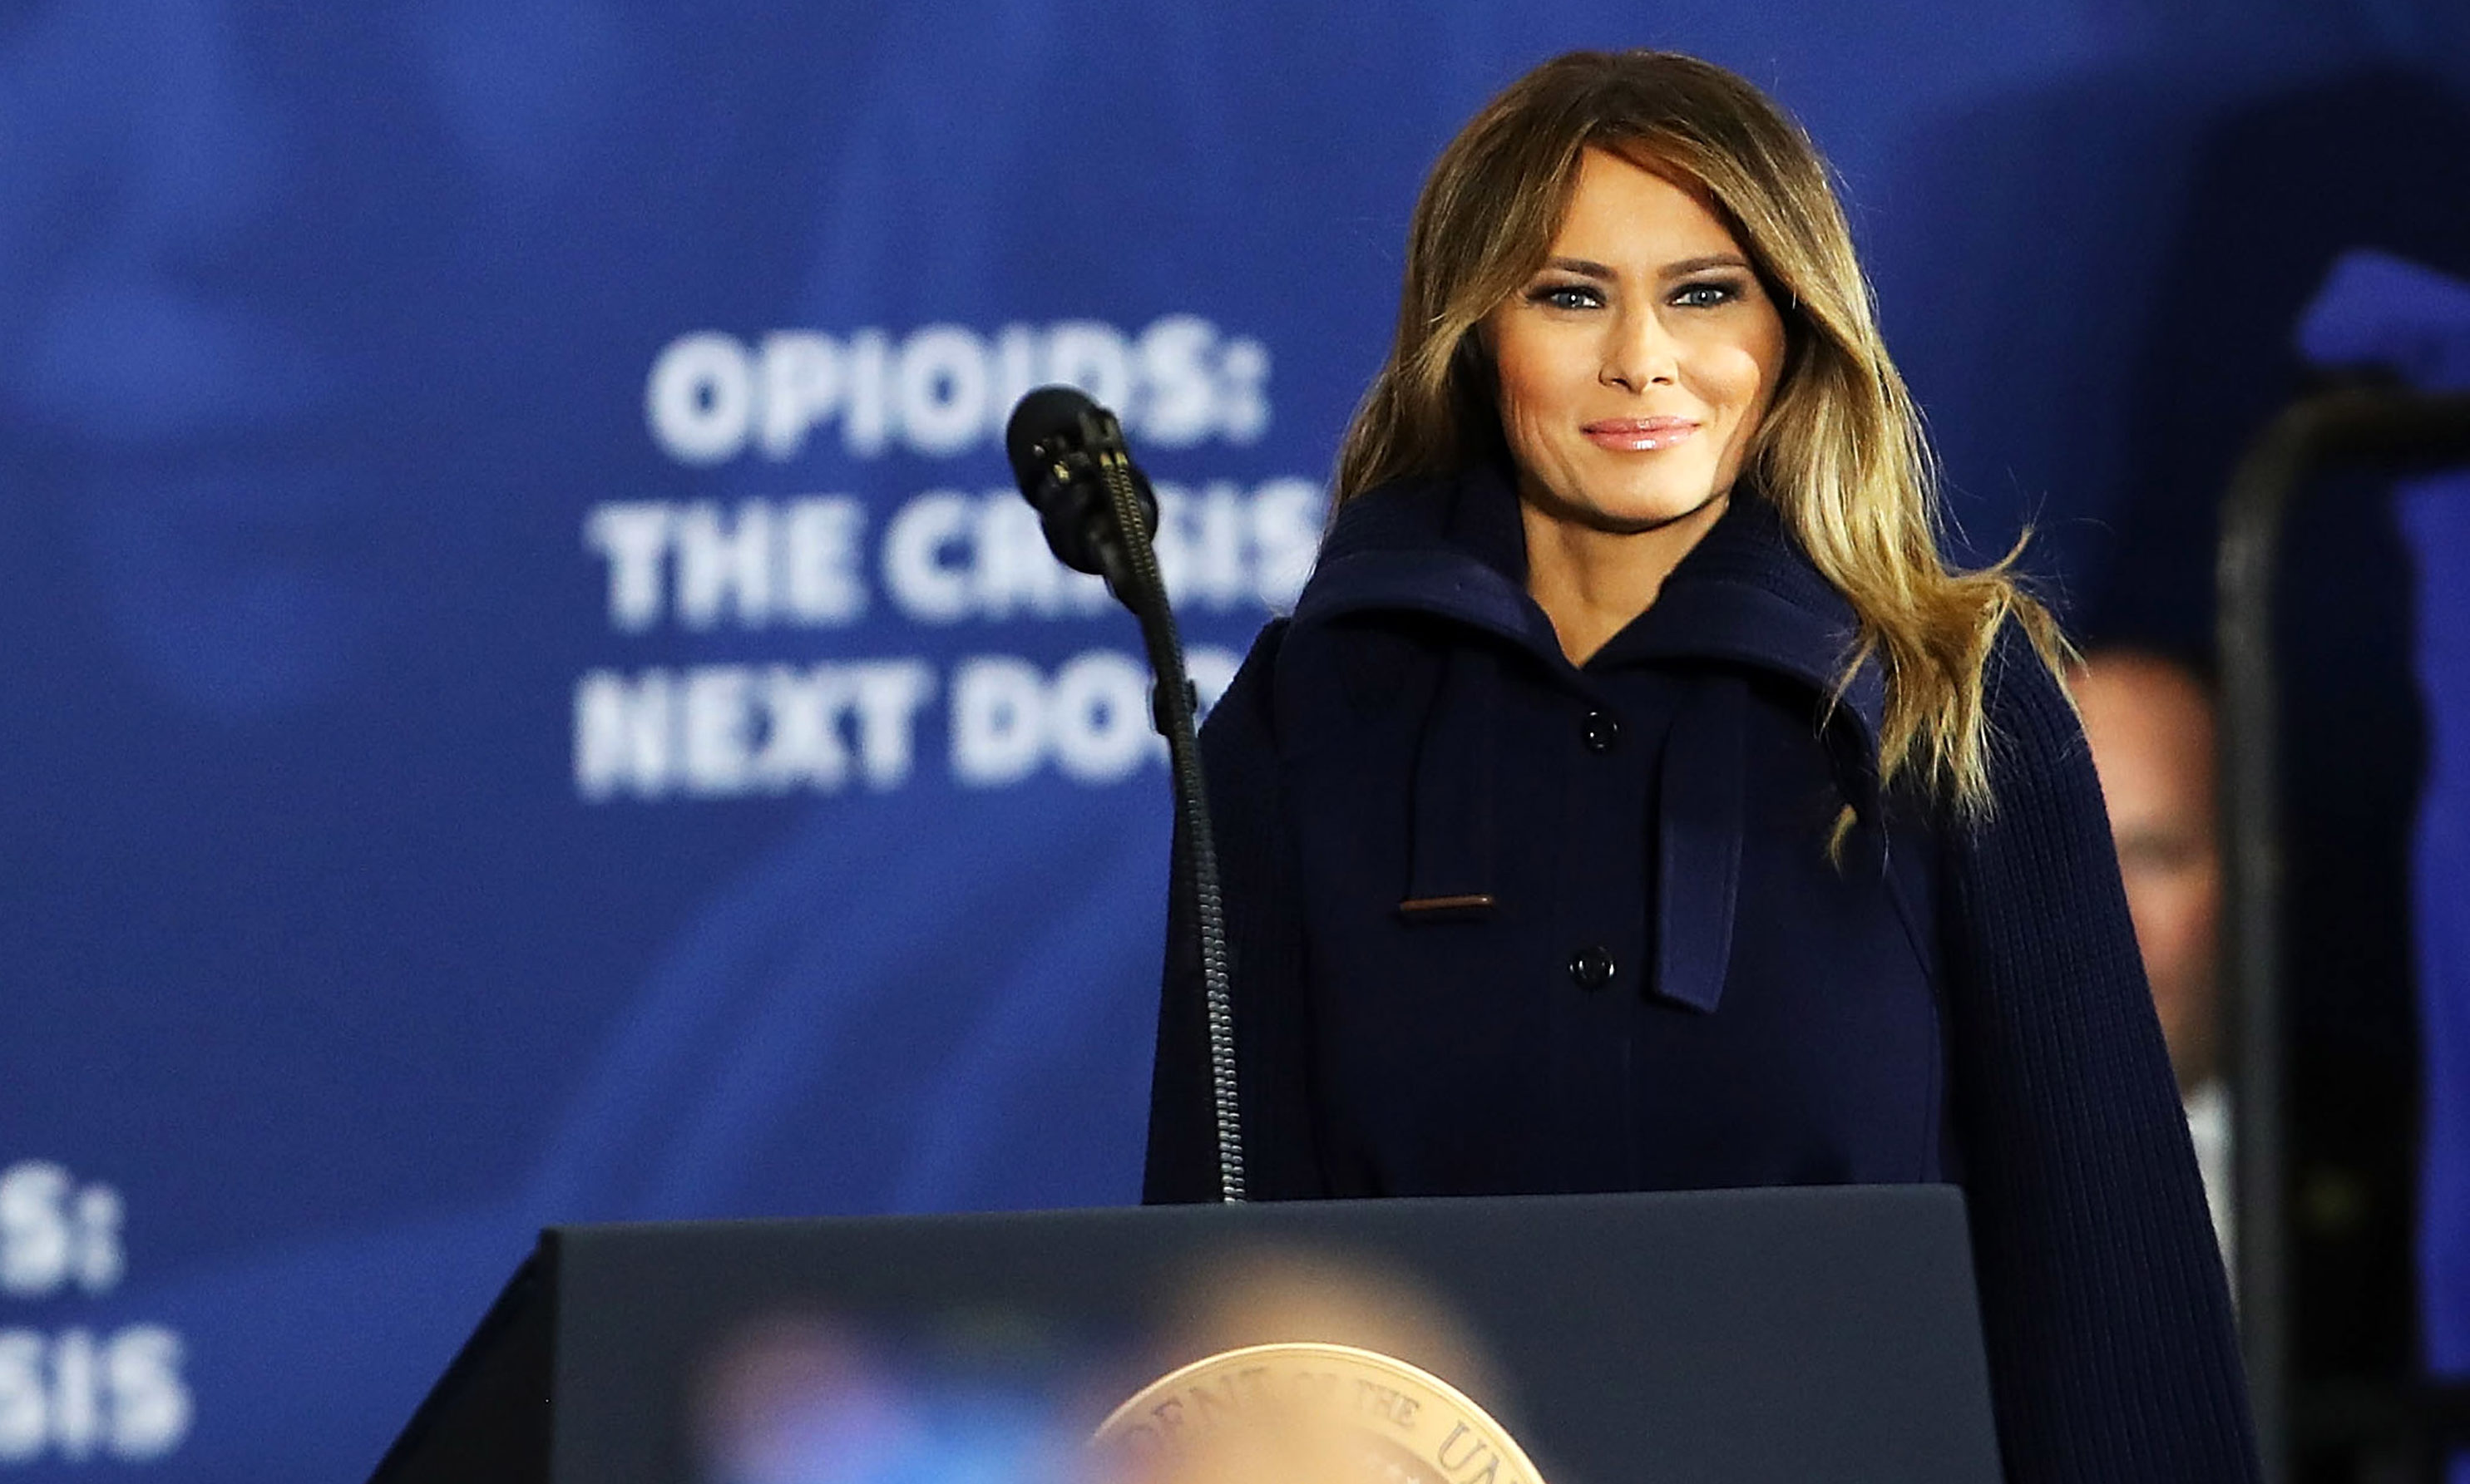 MANCHESTER, NH - MARCH 19: First lady Melania Trump walks onto stage to introduce her husband and to speak about opioids at an event at Manchester Community College on March 19, 2018 in Manchester, New Hampshire. The president addressed the ongoing opioid crisis which has had a devastating impact on cities and counties across the nation. In Manchester overdoses through early March were up 23 percent from this time last year.Trump was also joined his Attorney General Jeff Sessions  (Photo by Spencer Platt/Getty Images)